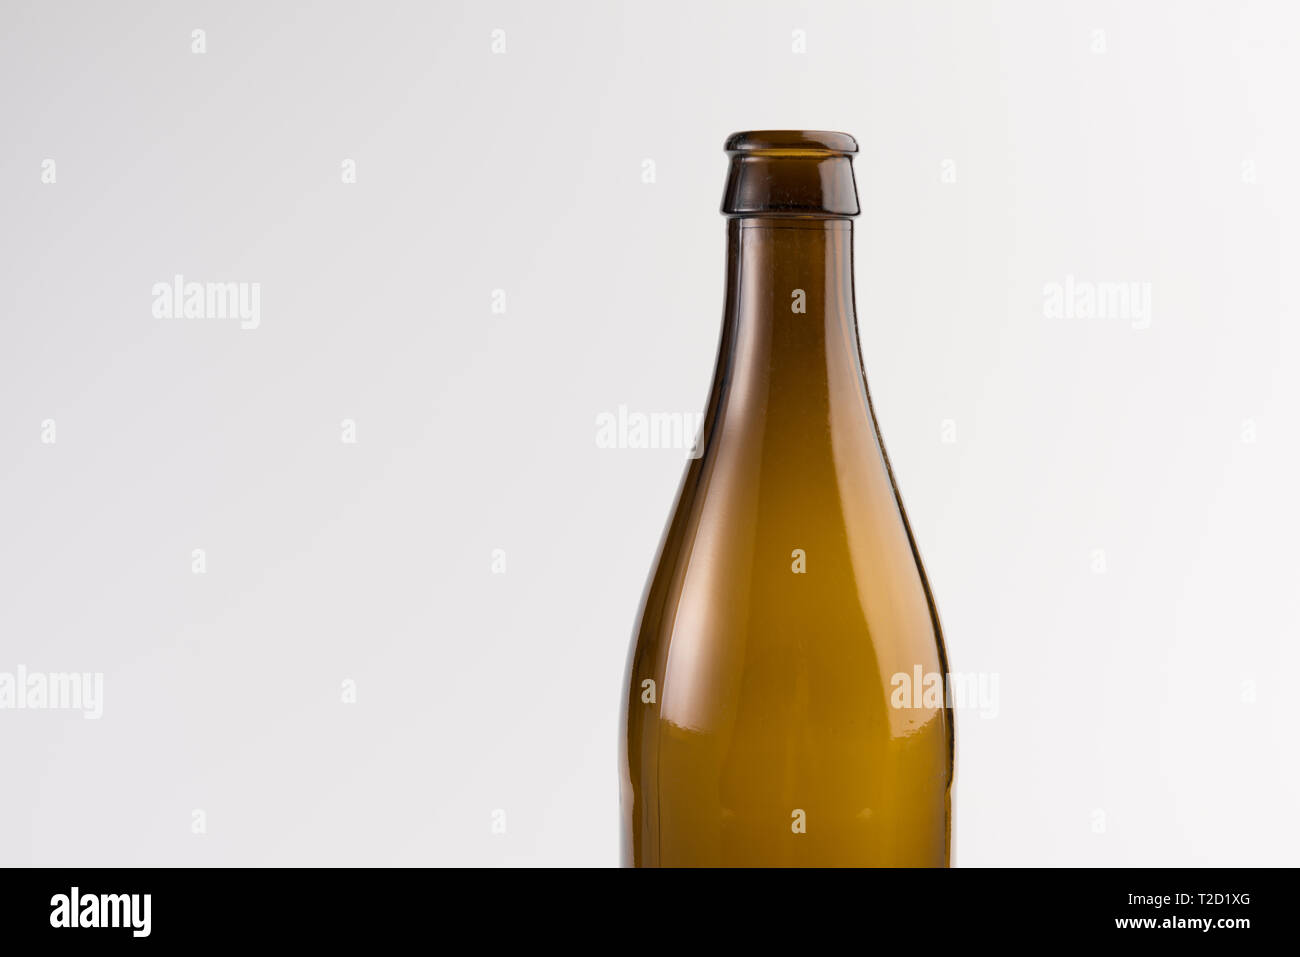 Page 2 Empty Beer Bottle High Resolution Stock Photography And Images Alamy